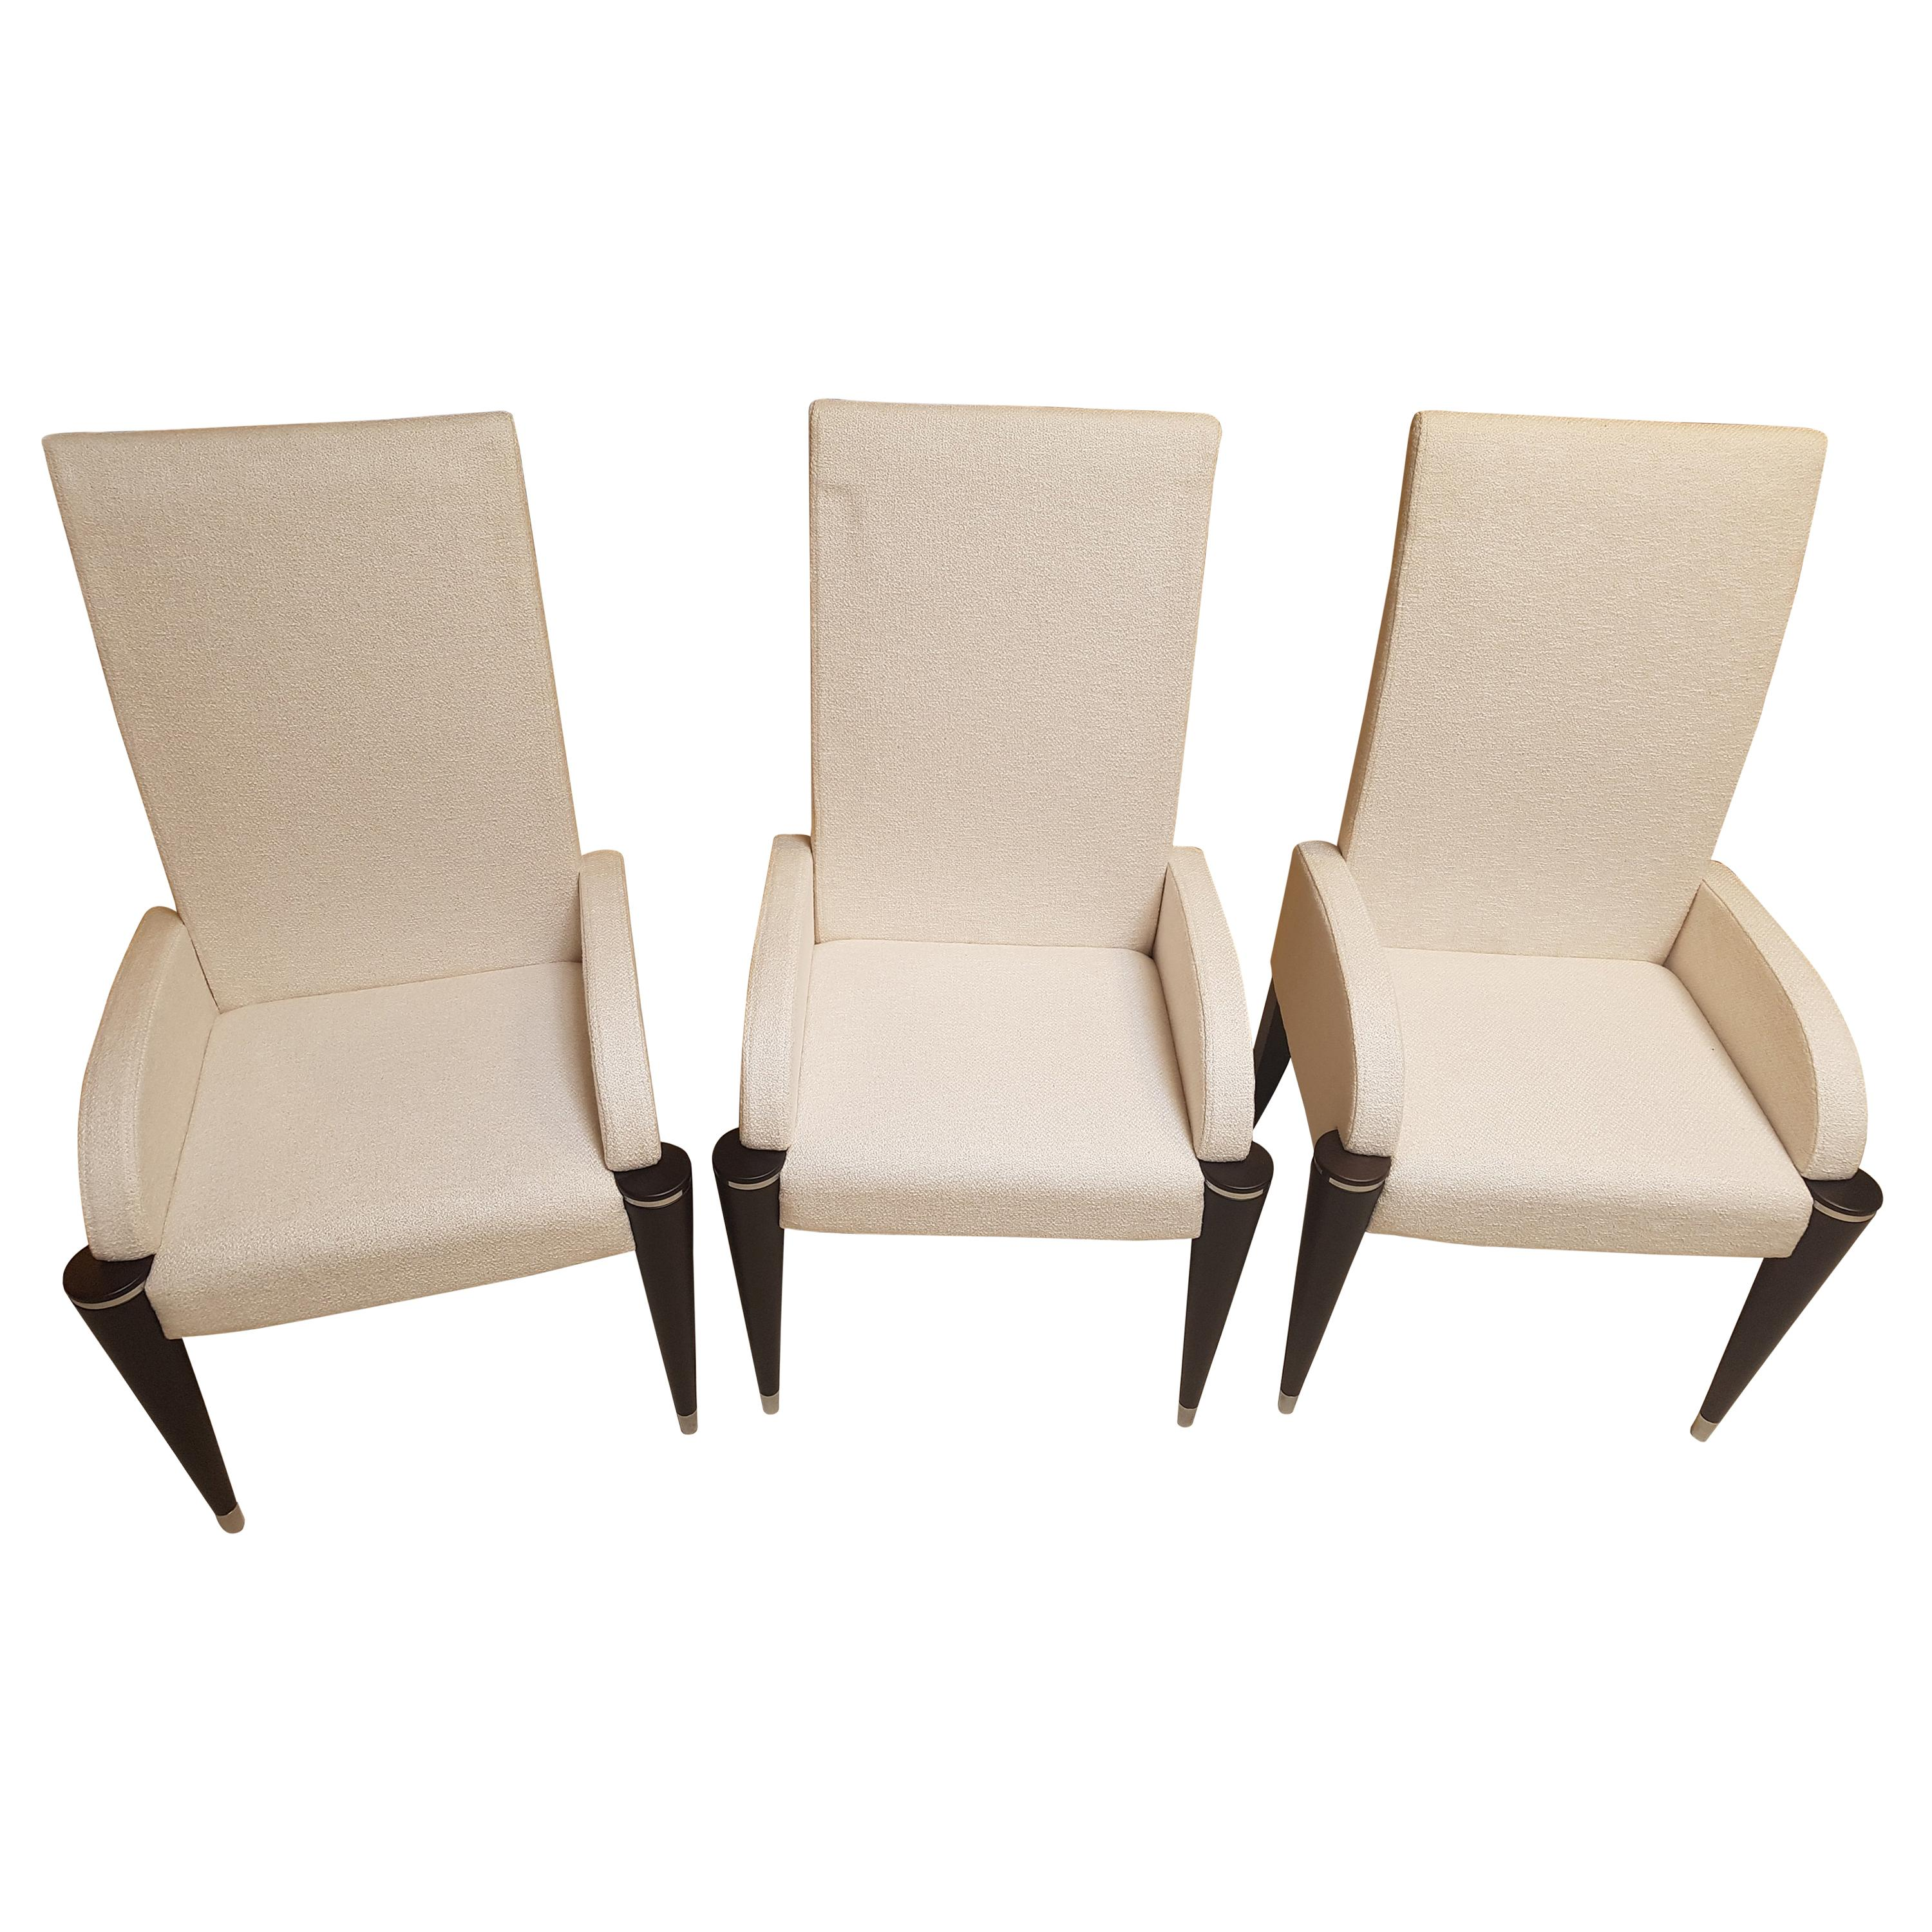 White Fabric Dining Chairs with Black Fluted Legs For Sale  sc 1 st  1stDibs & White Fabric Dining Chairs with Black Fluted Legs For Sale at 1stdibs